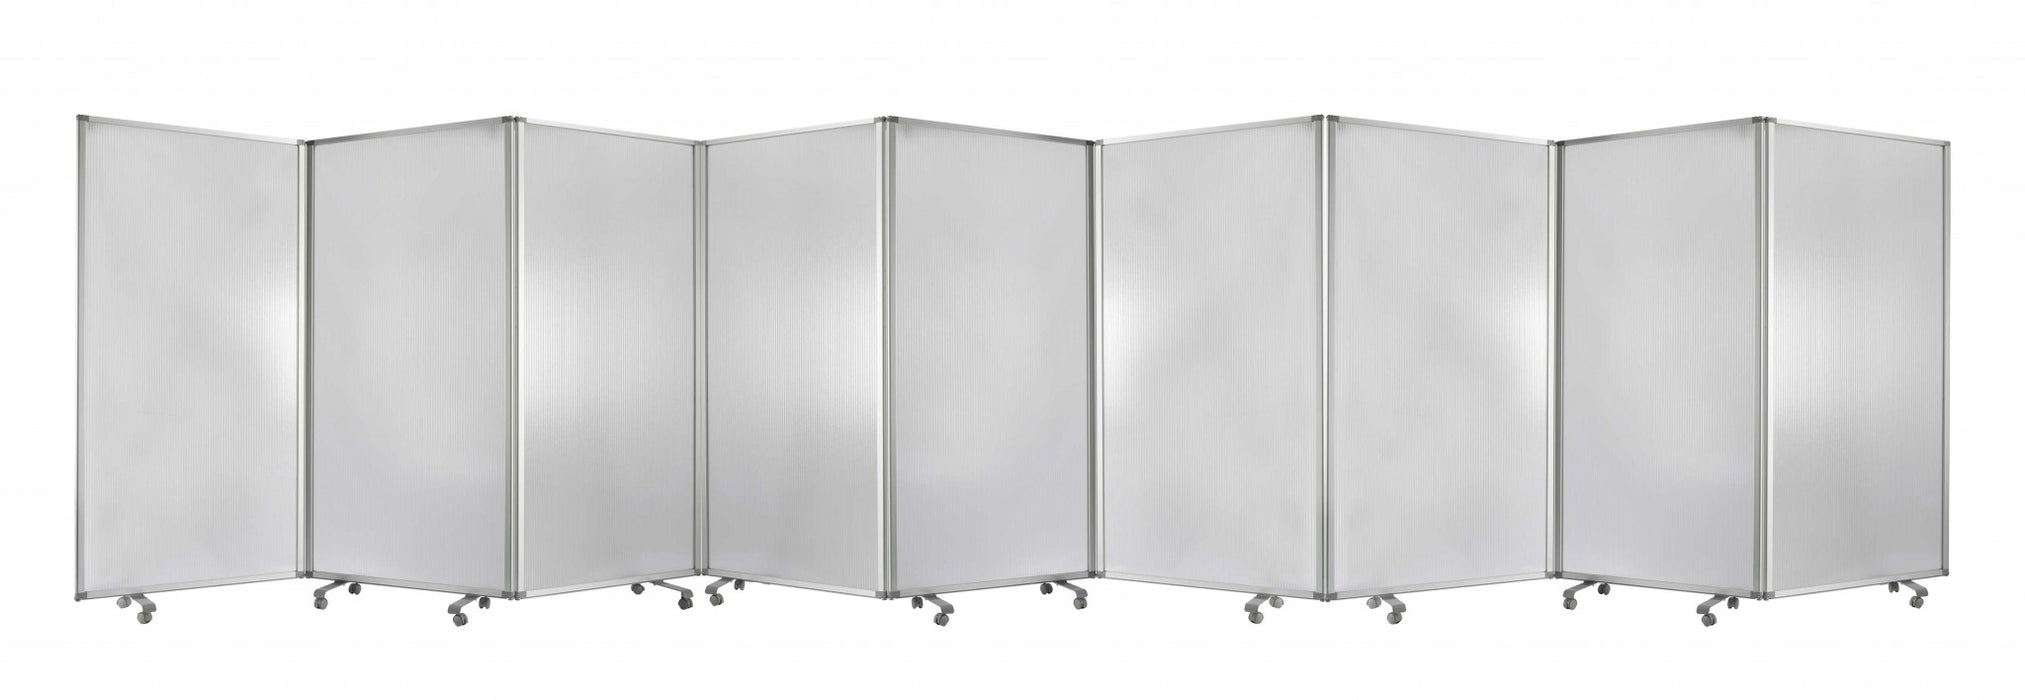 "HomeRoots 318"" x 1"" x 71"" Clear, Metal, 9 Panel, Resilient Screen"